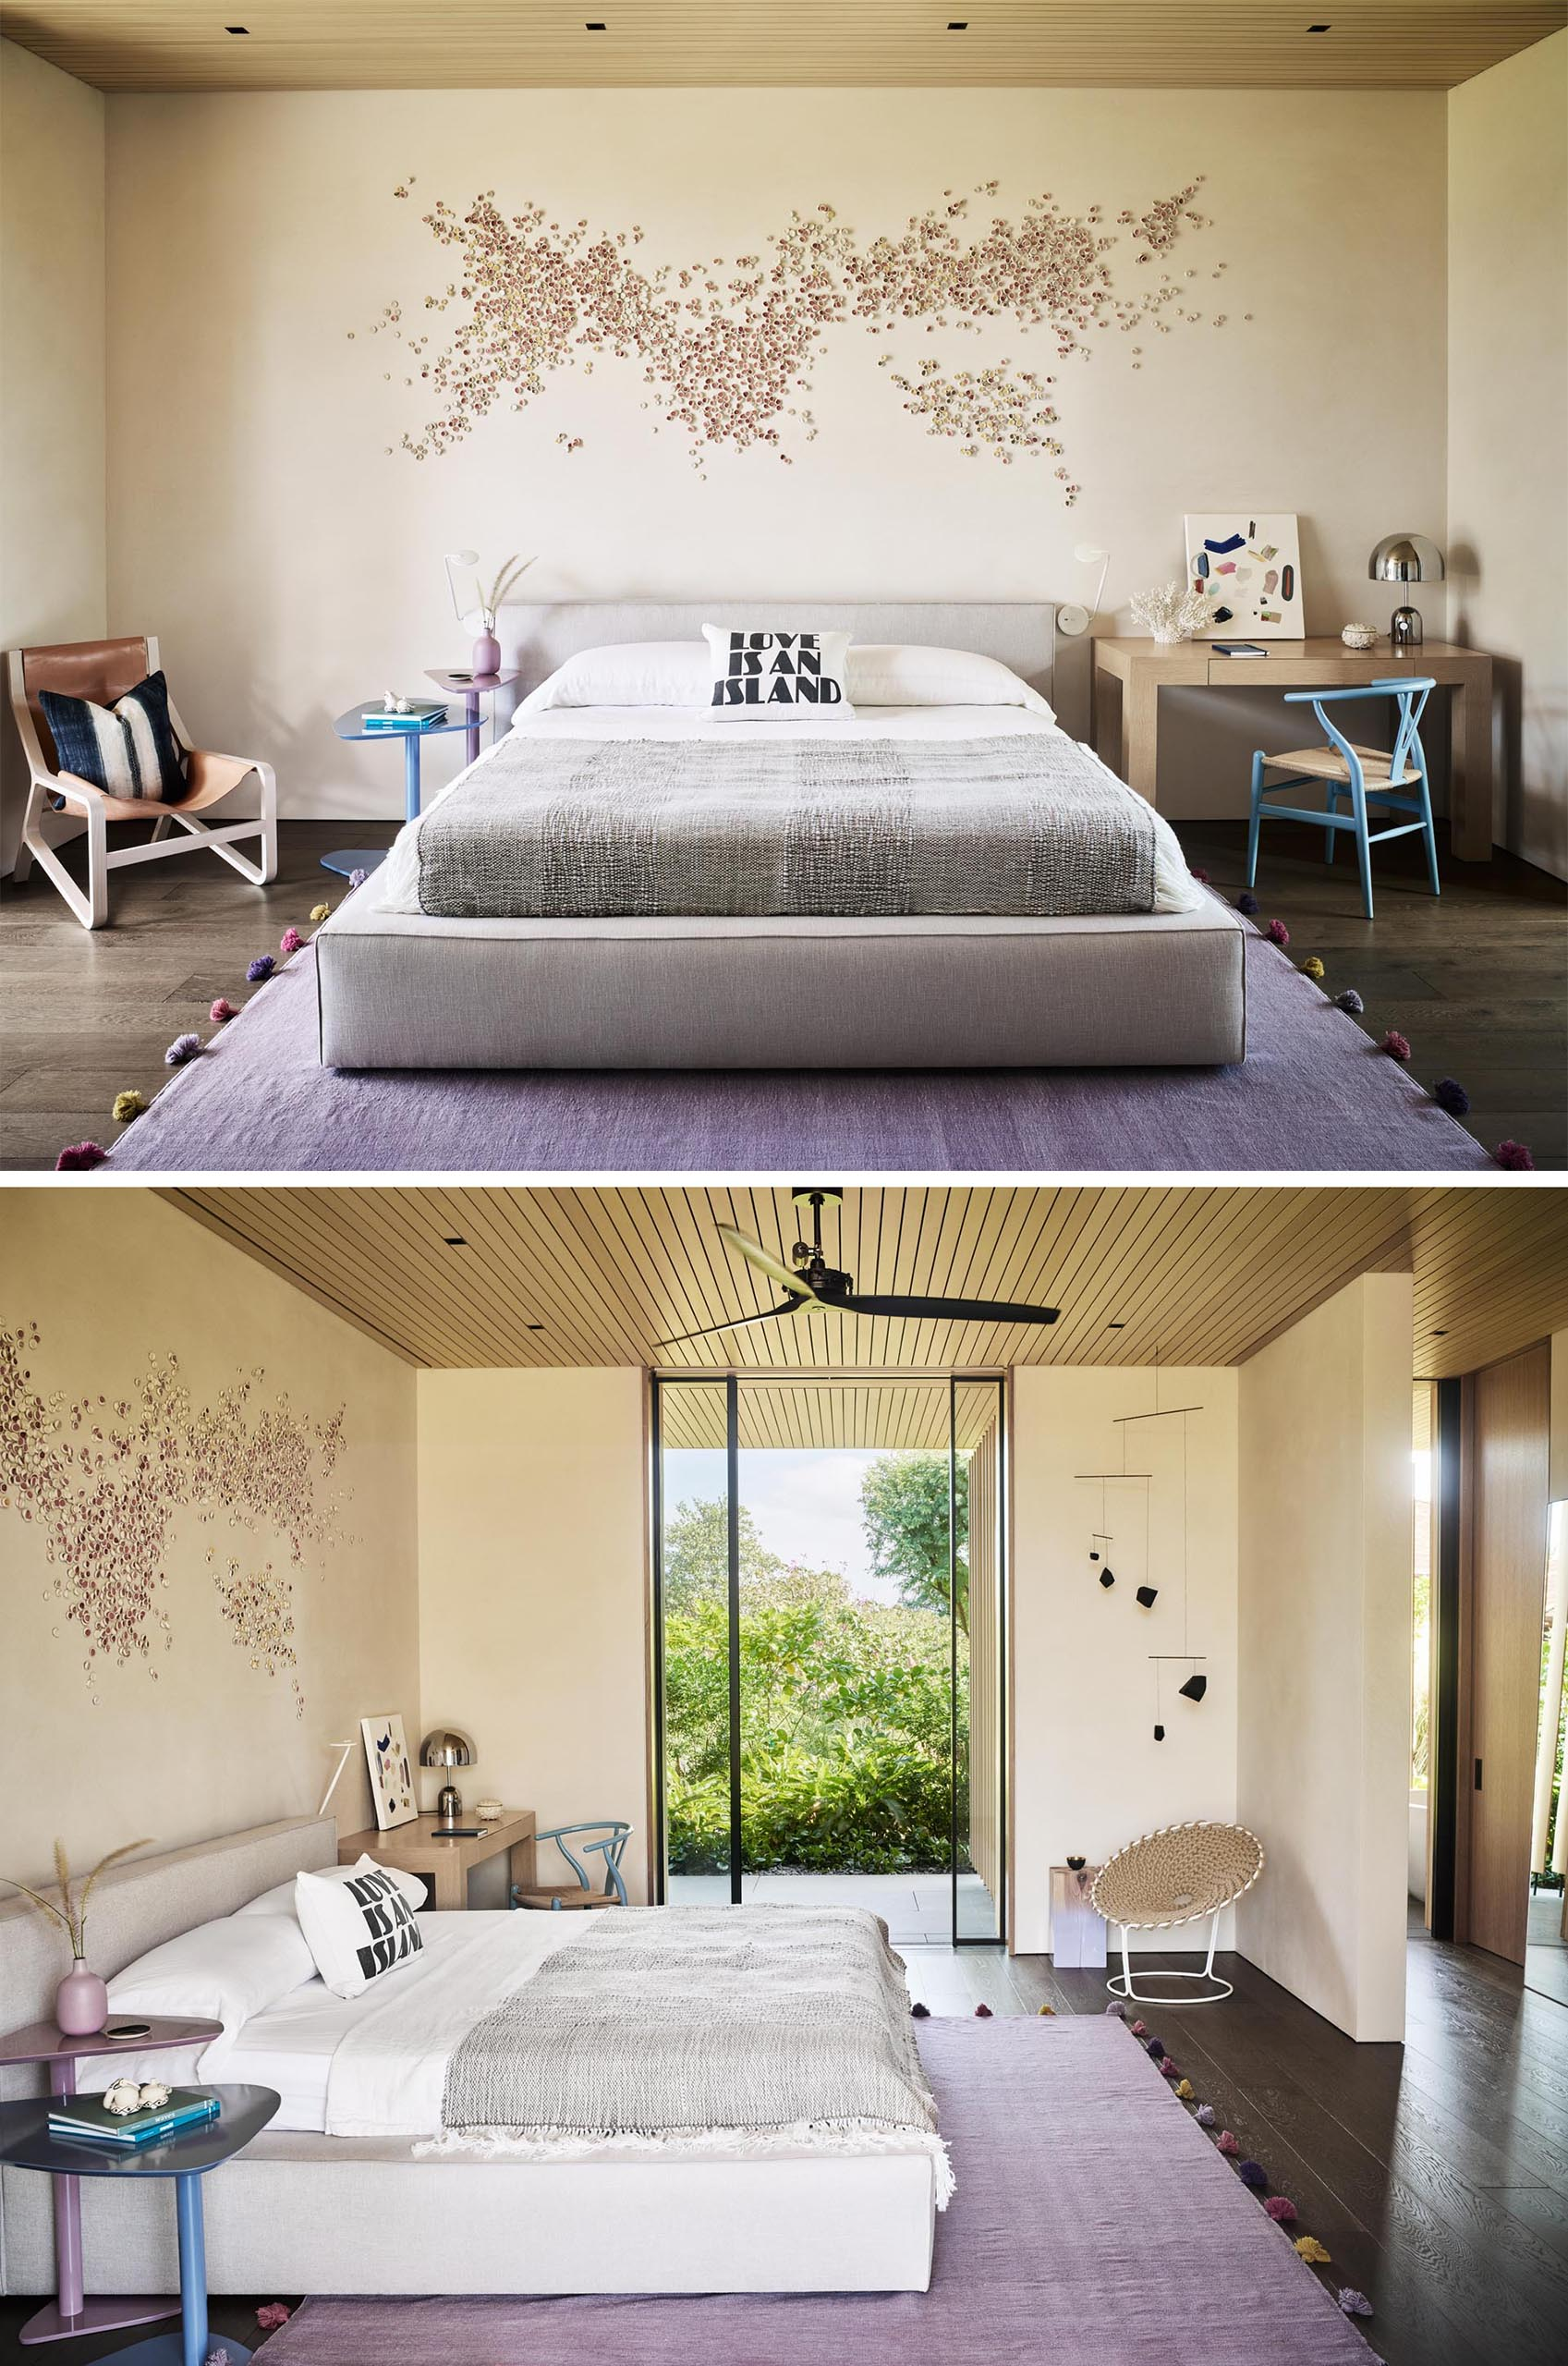 A modern bedroom with a neutral color palette and artwork on the wall